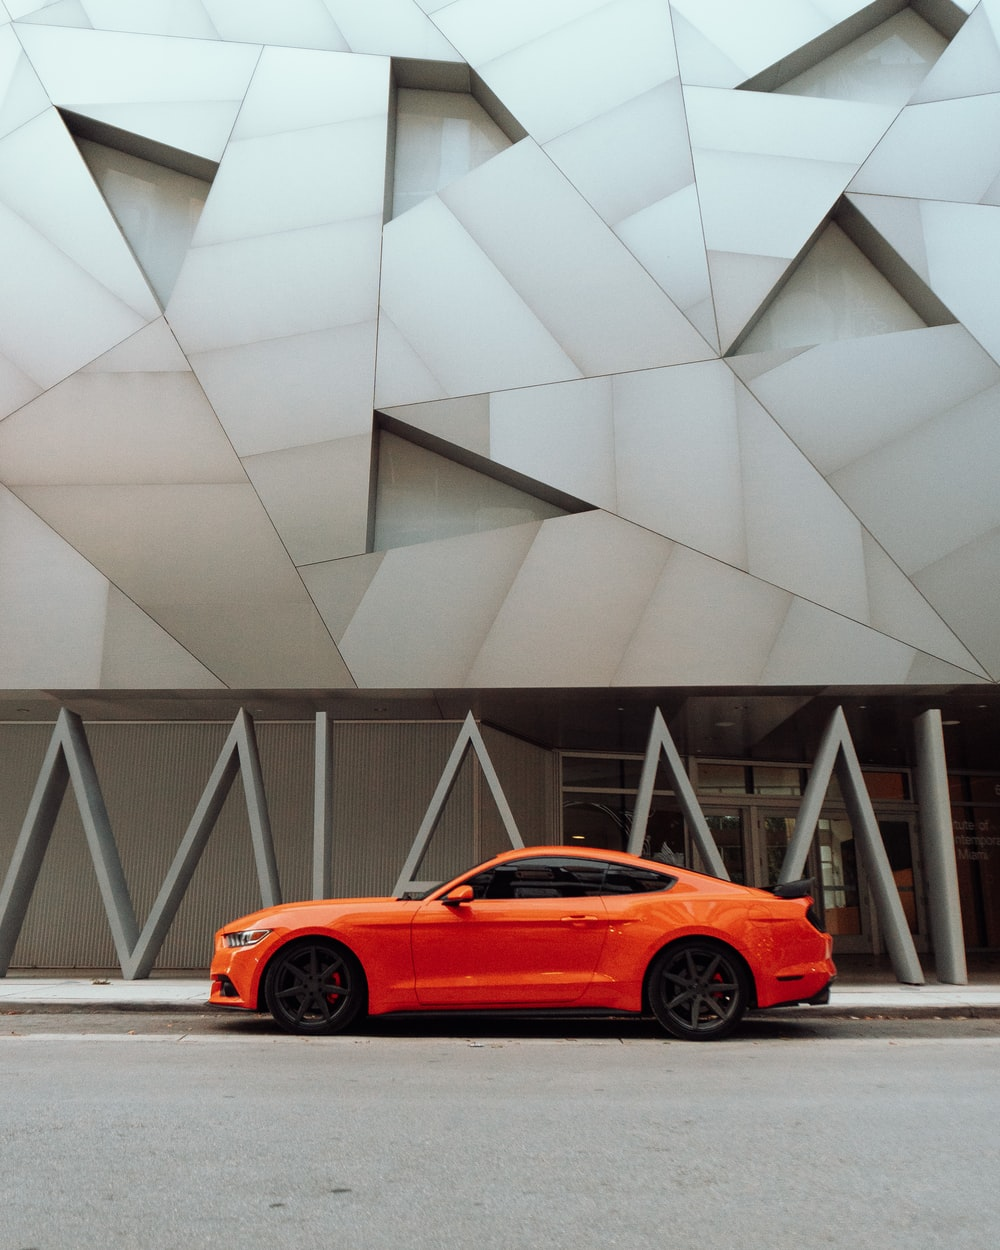 orange coupe parked near gray concrete building